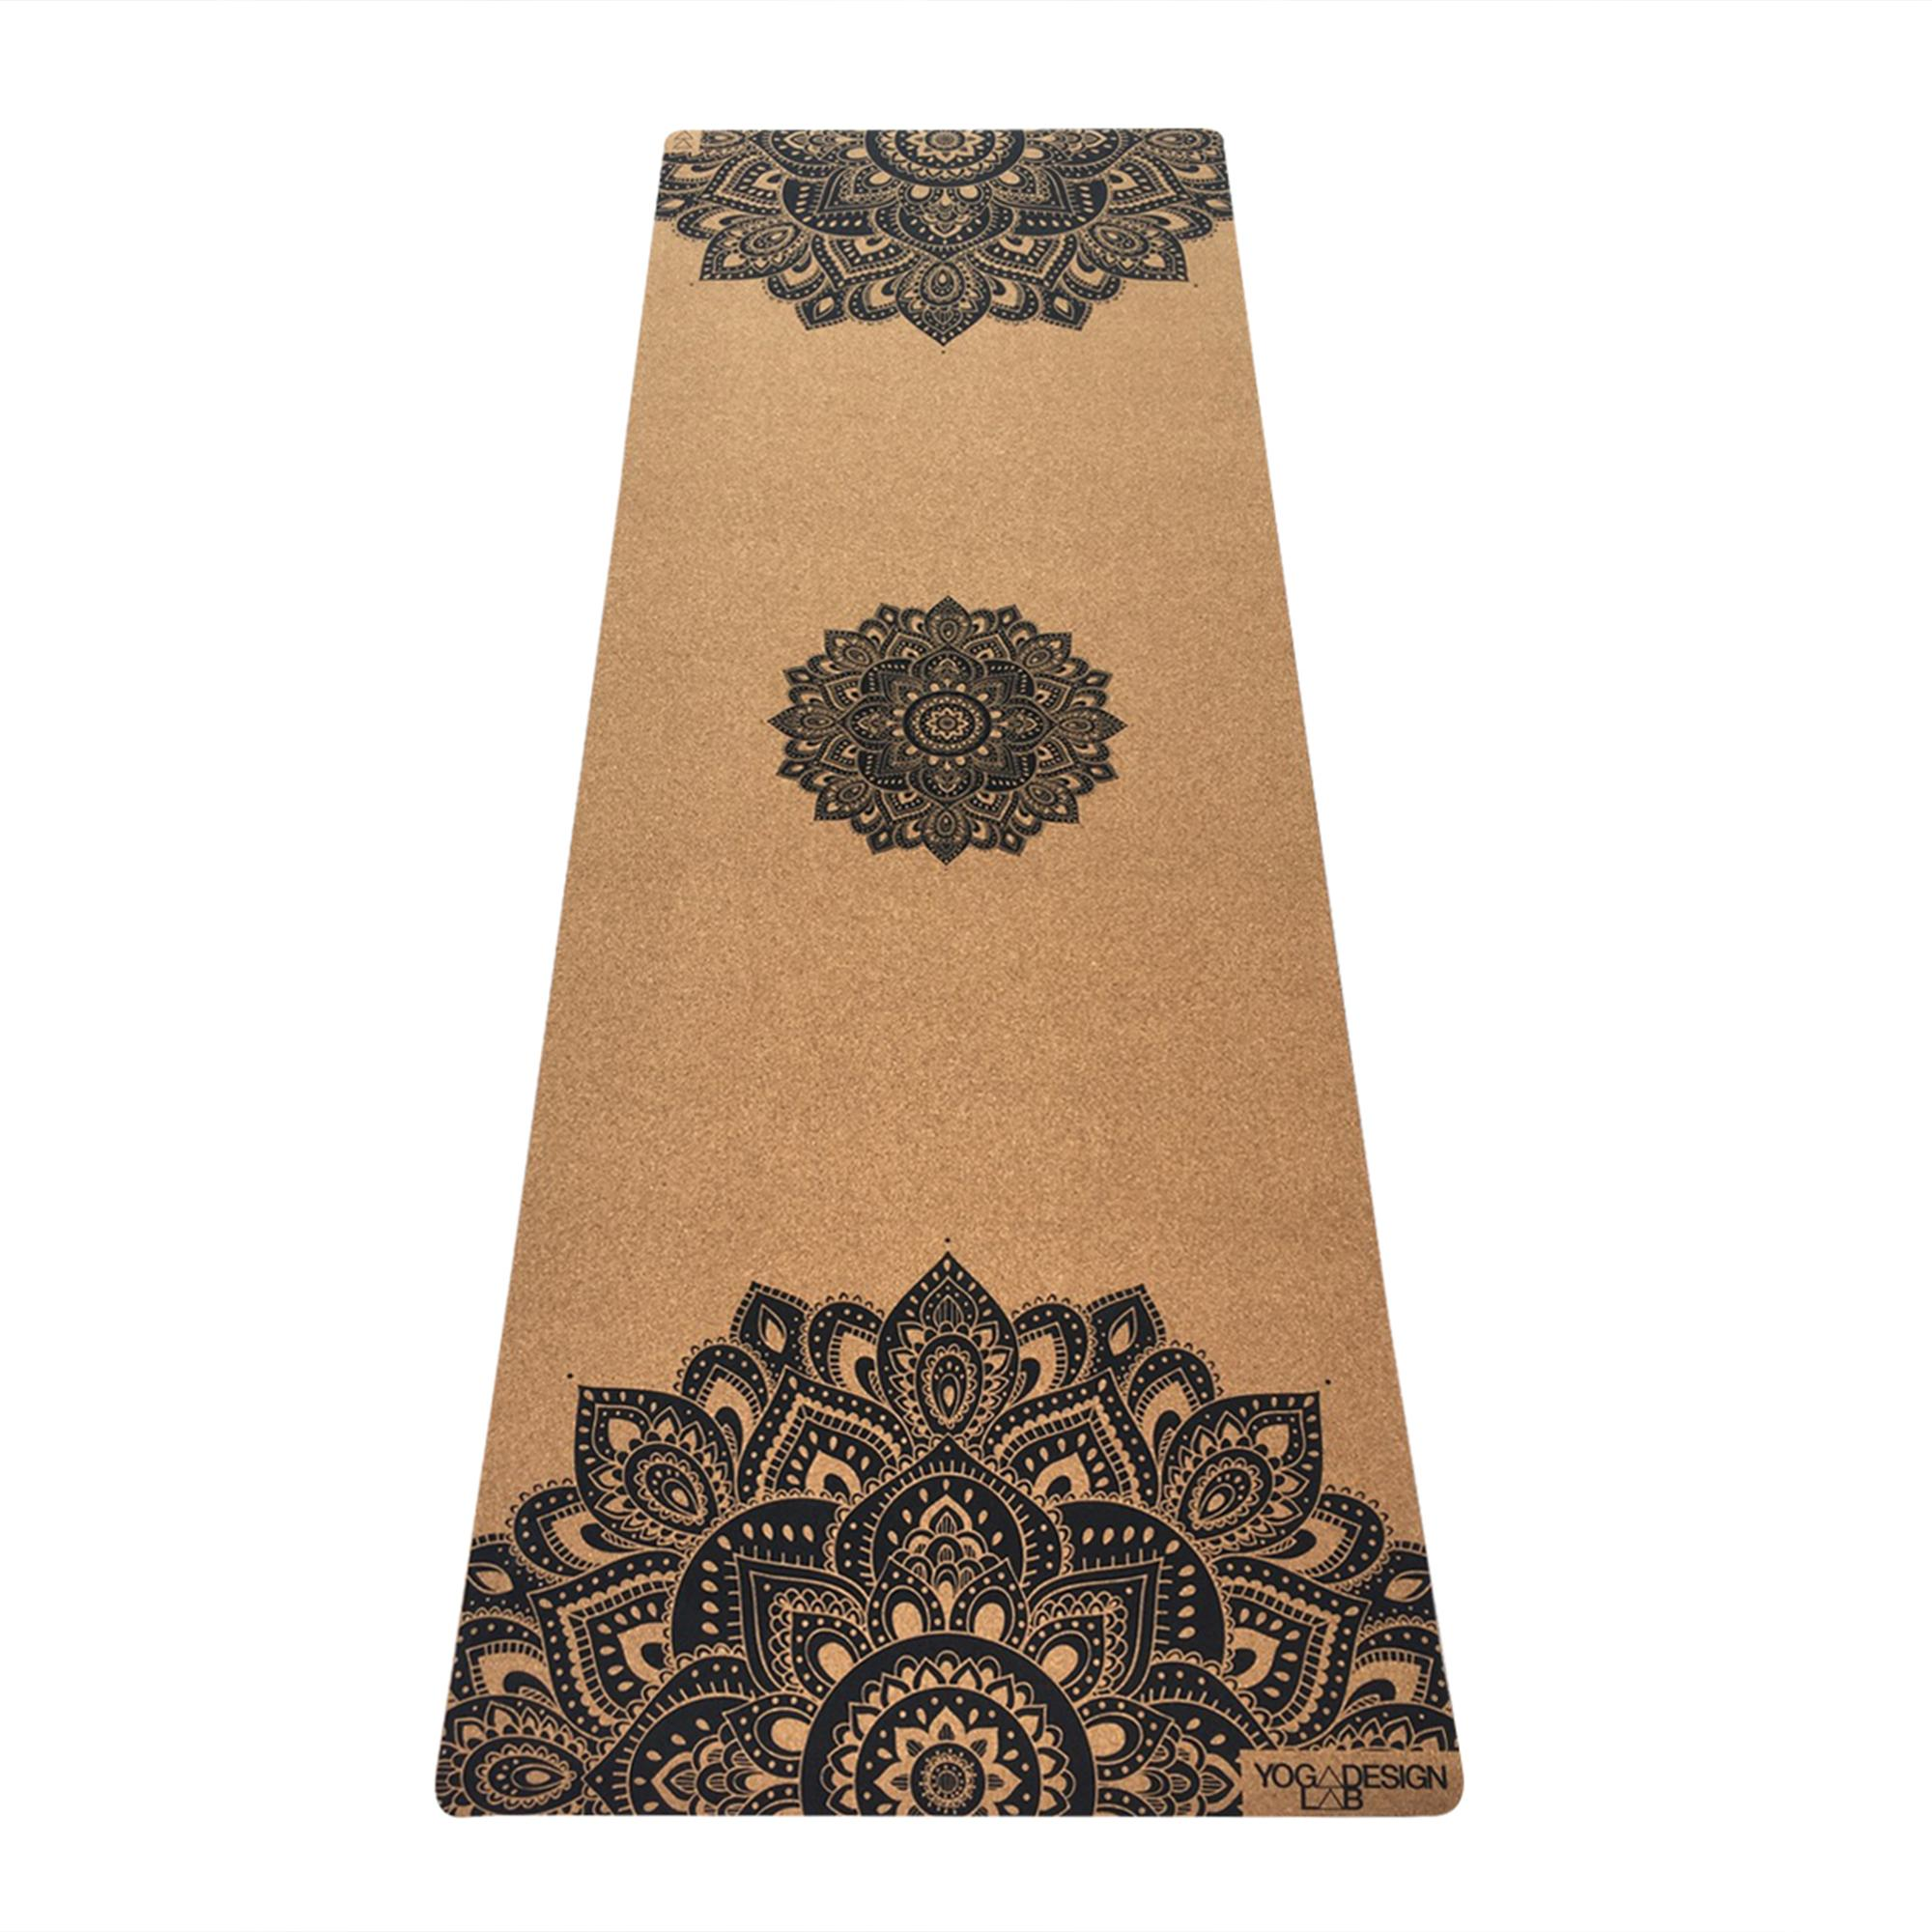 3.5mm Cork Yoga Mat- Mandala Black